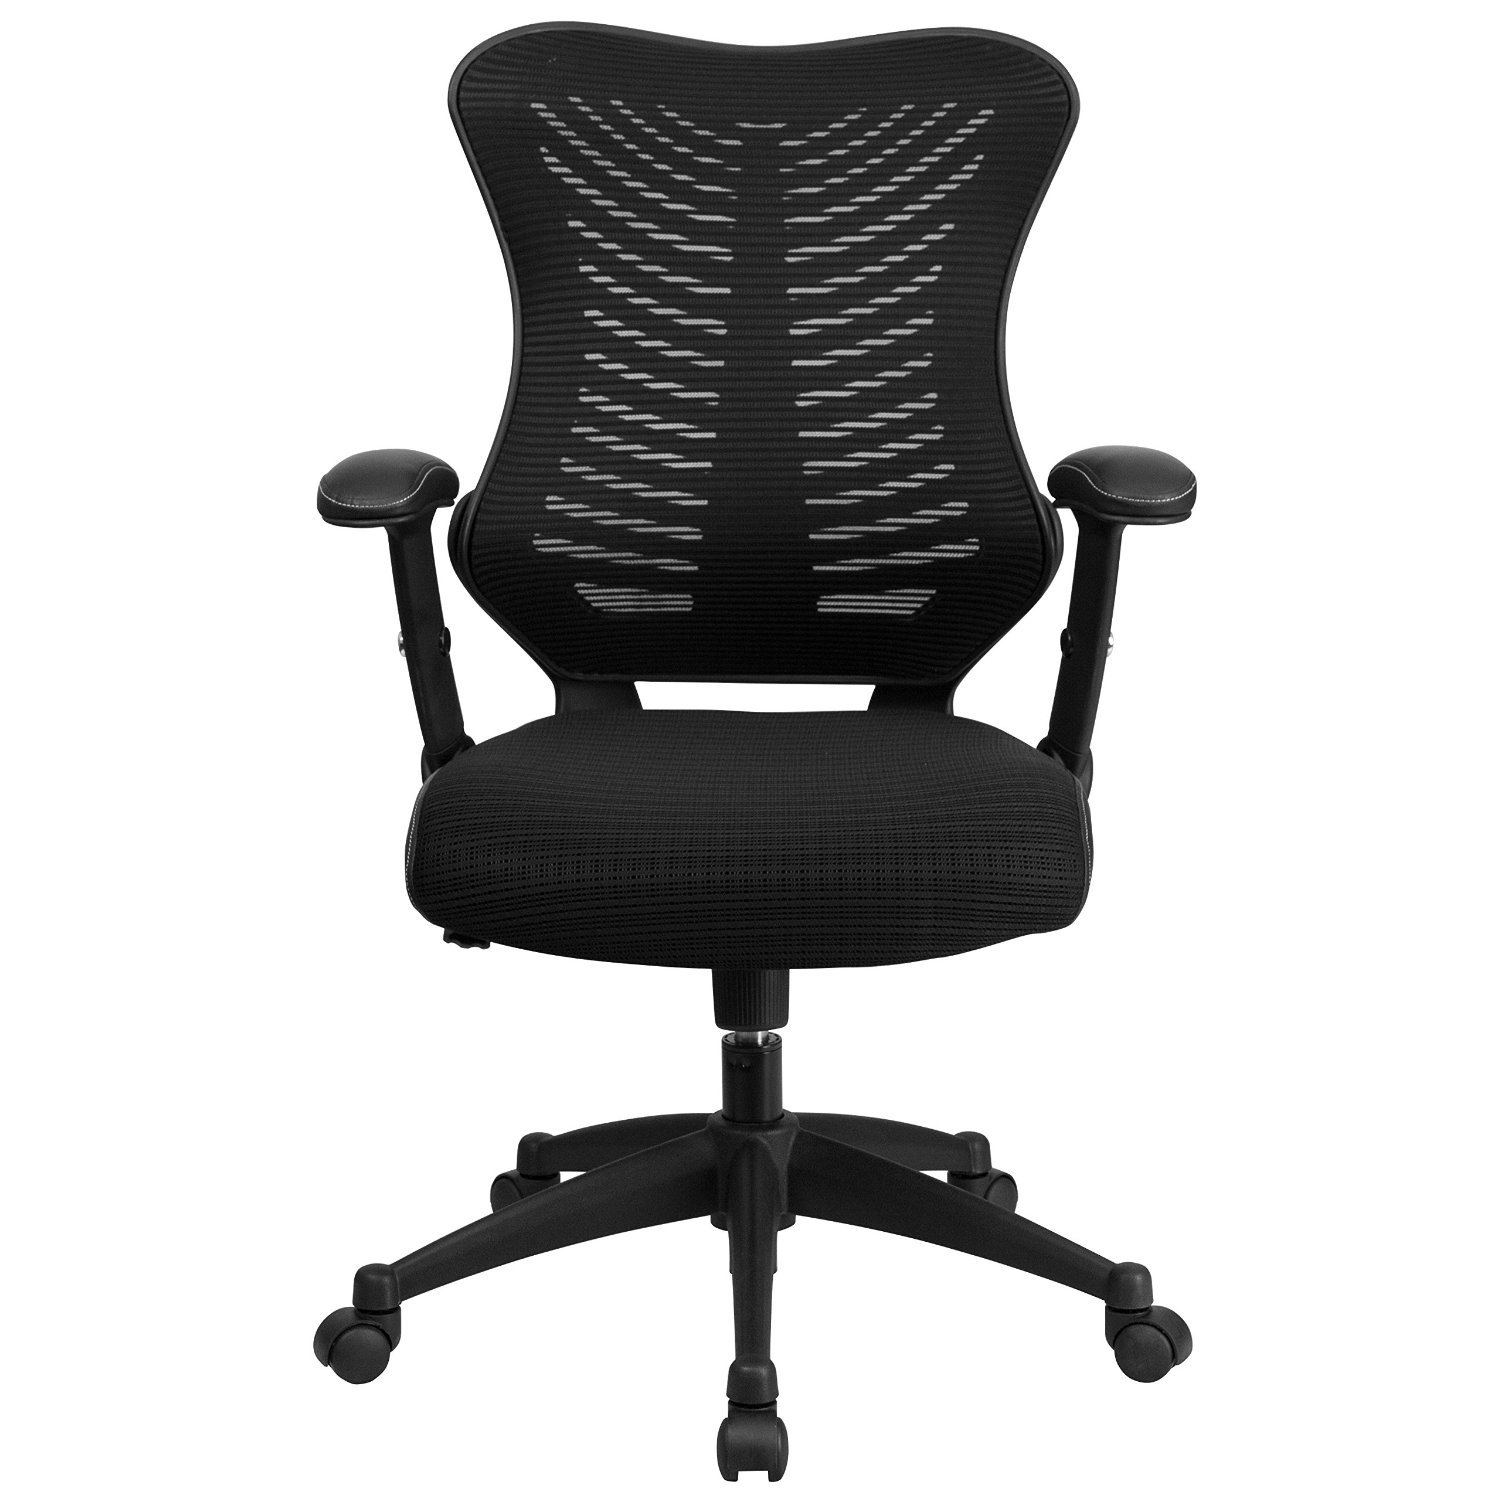 mesh high back ergonomic executive office chair for computer desk